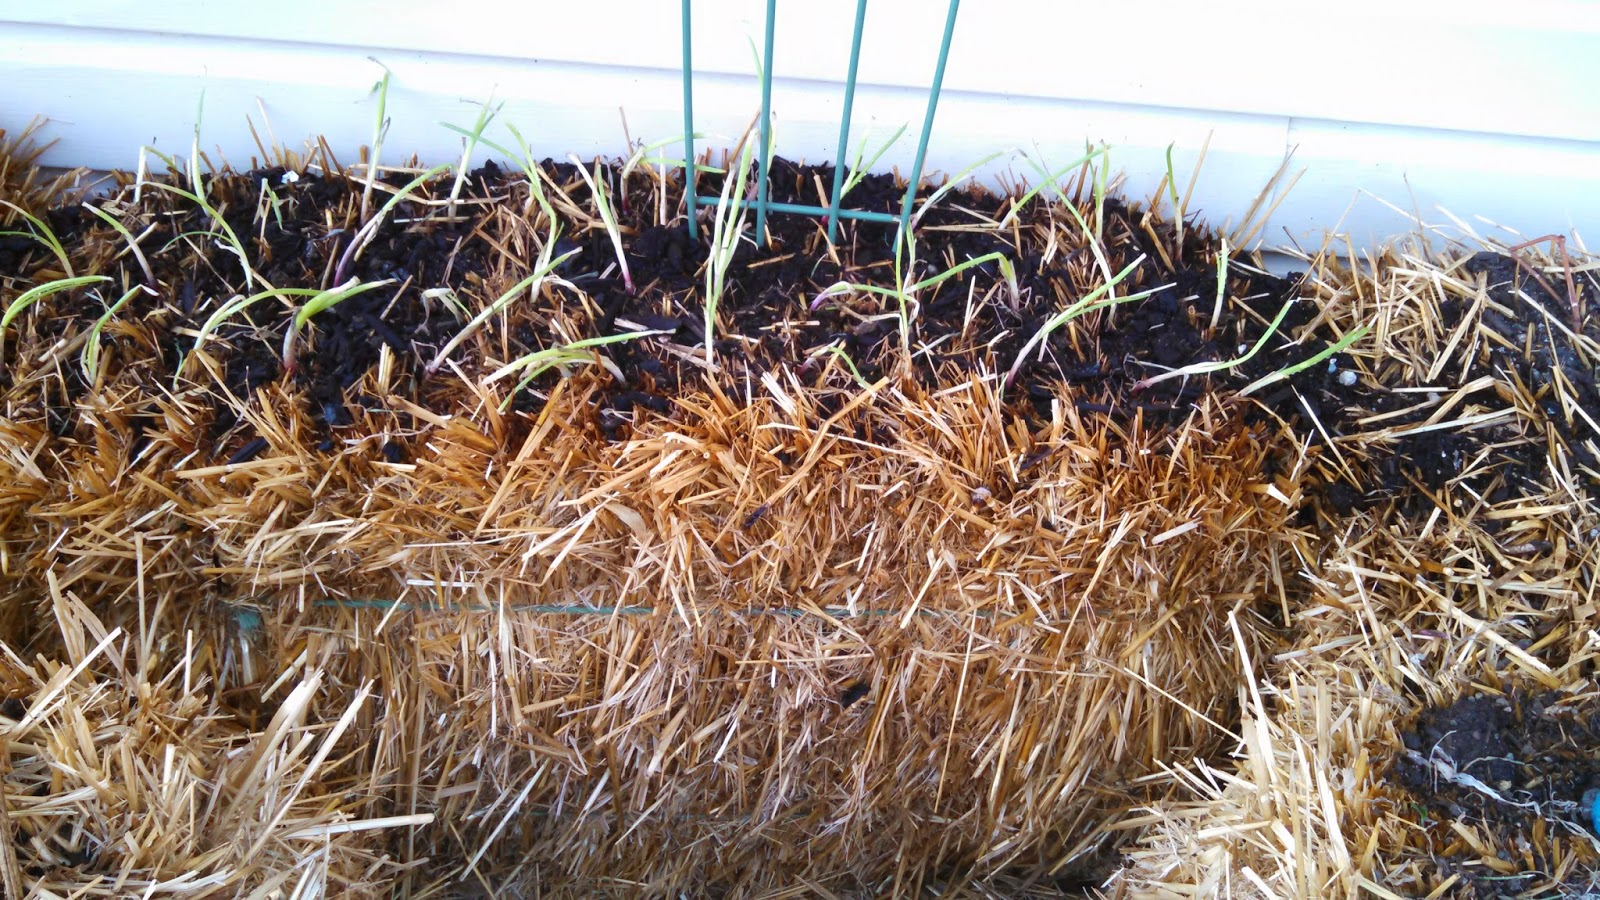 Onion Sets Planted in Straw Bale